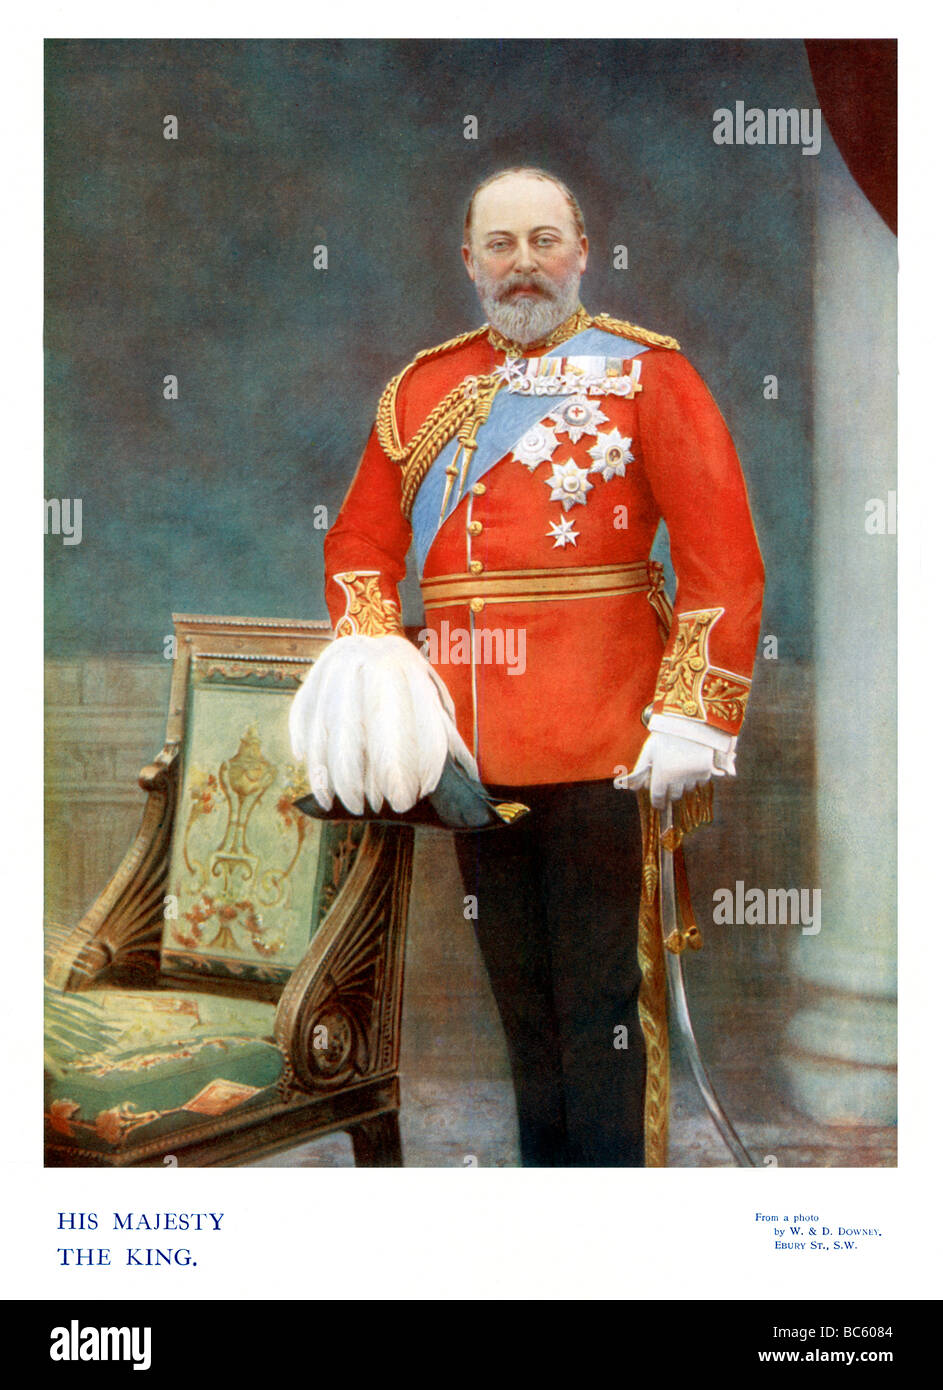 King Edward VII 1901 colour portrait photograph of the English monarch at the beginning of his reign - Stock Image